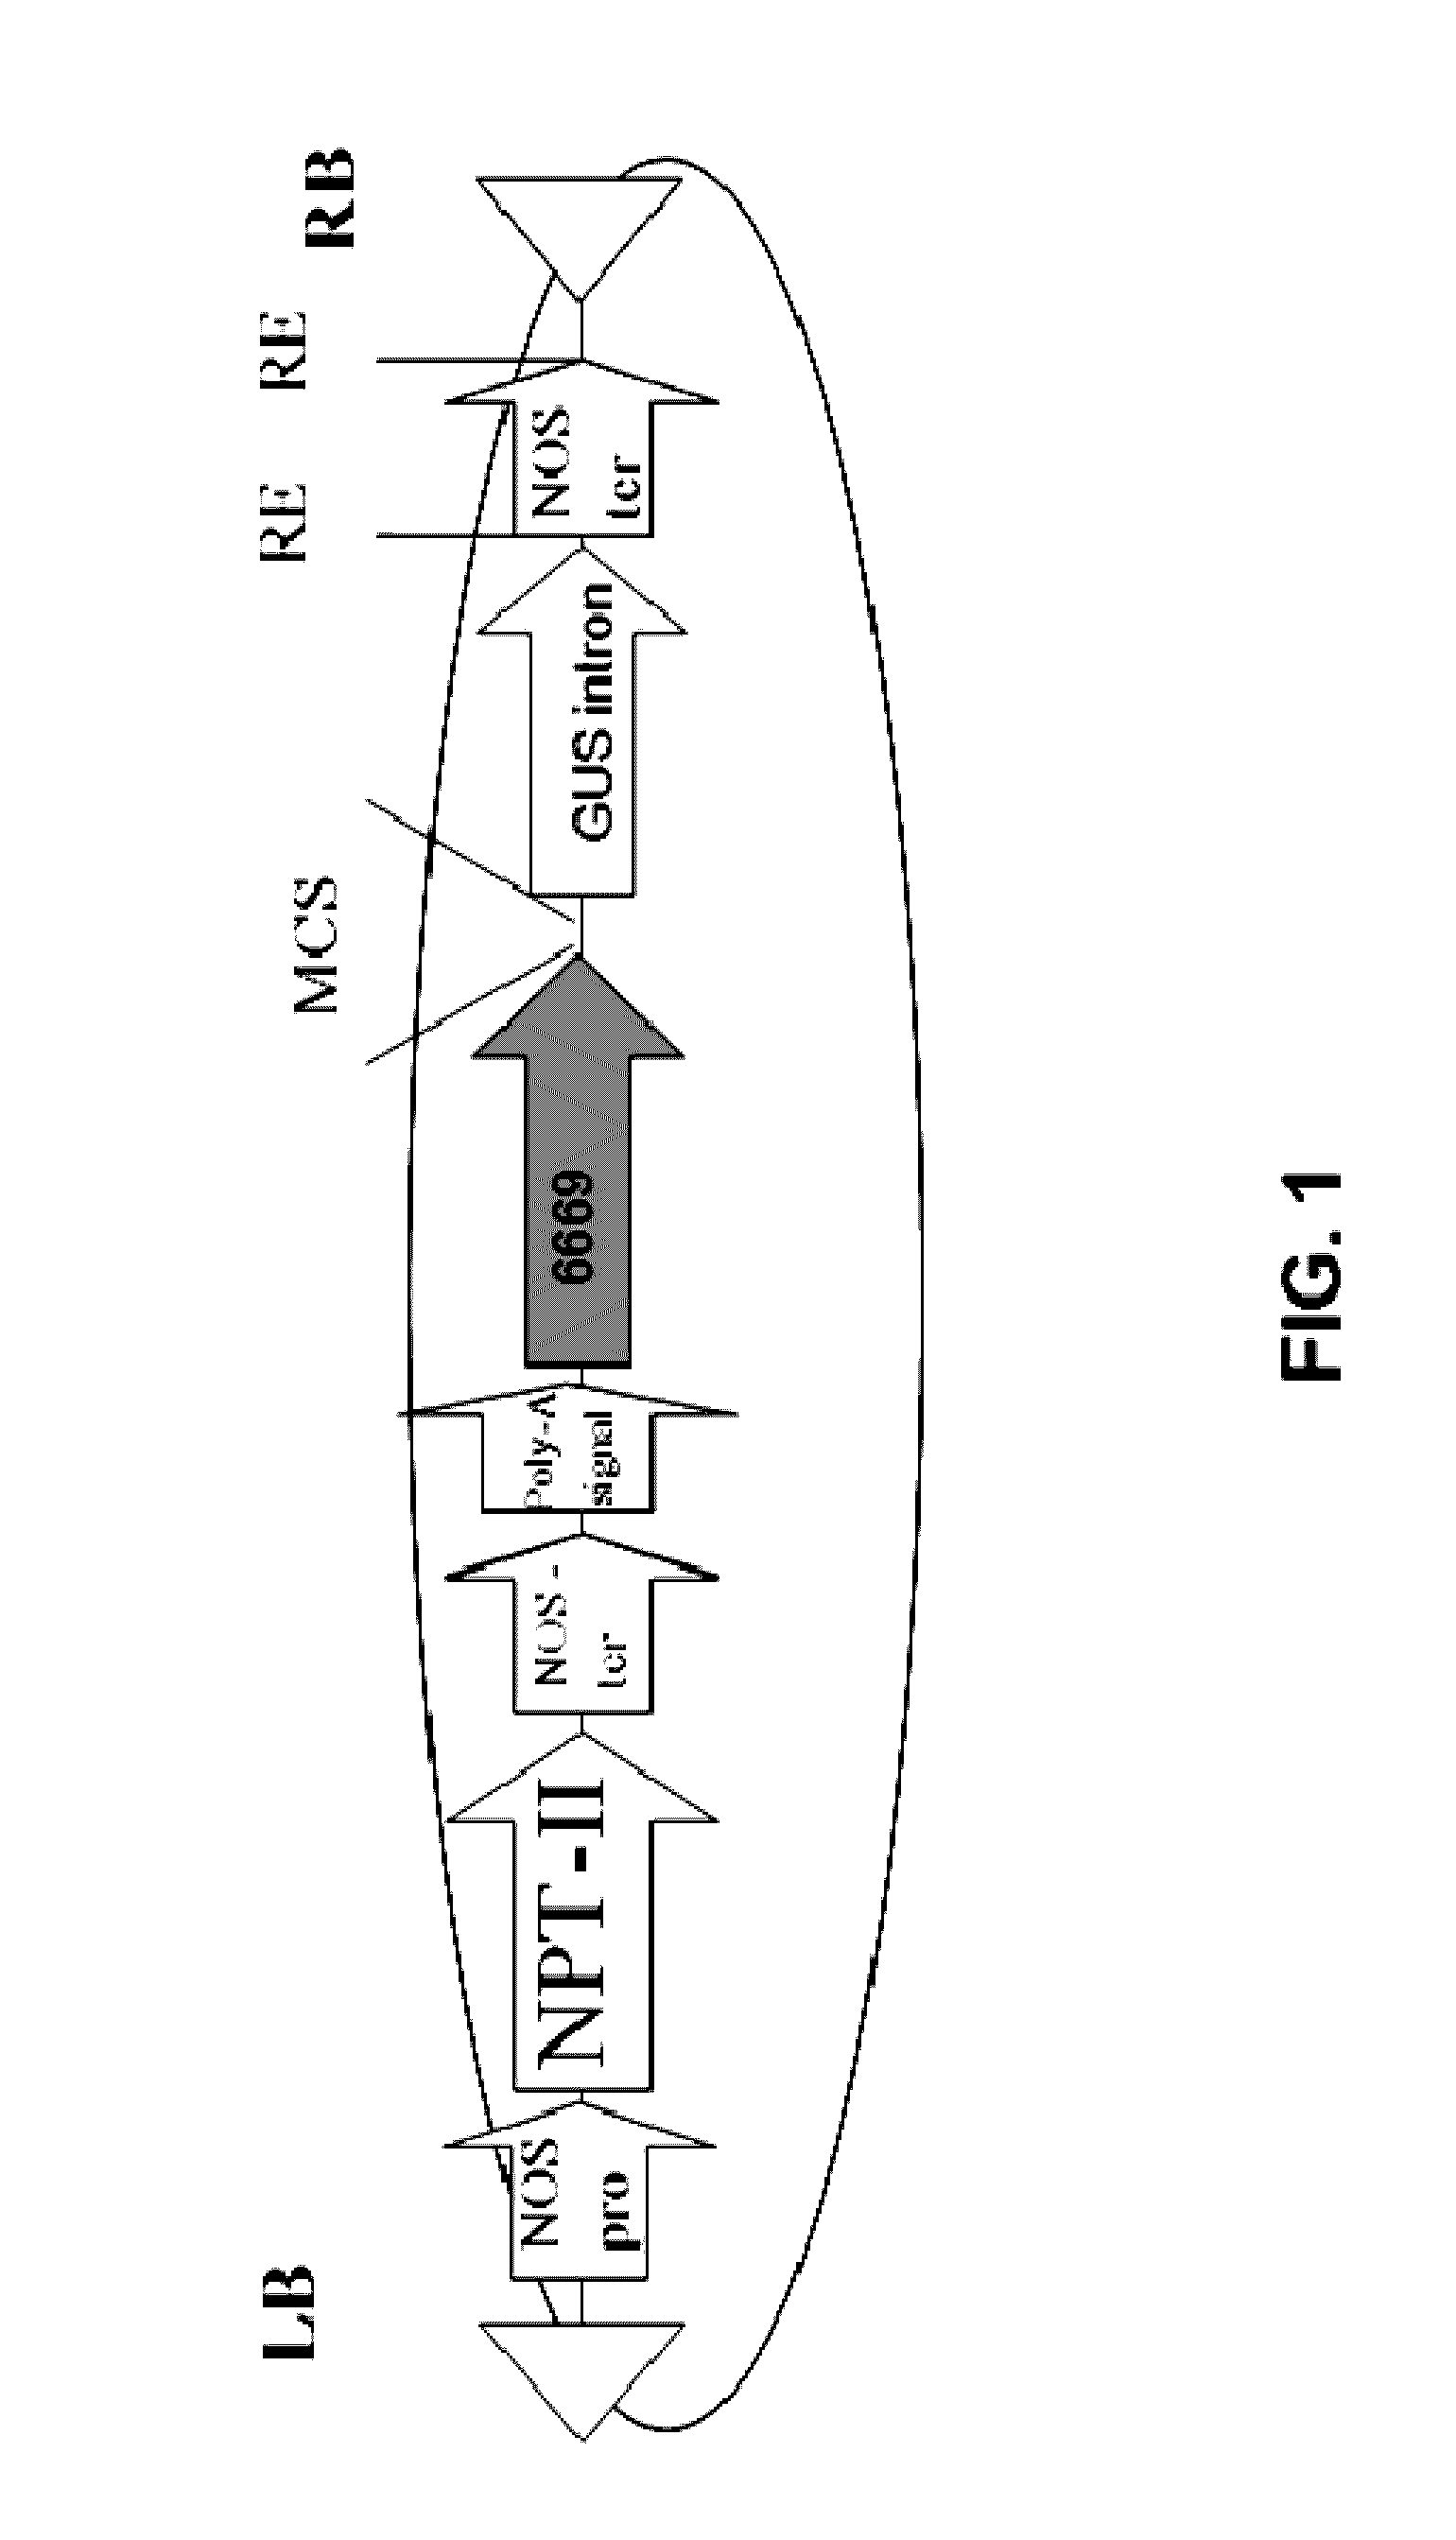 US9487795B2 - Isolated polynucleotides and polypeptides, and